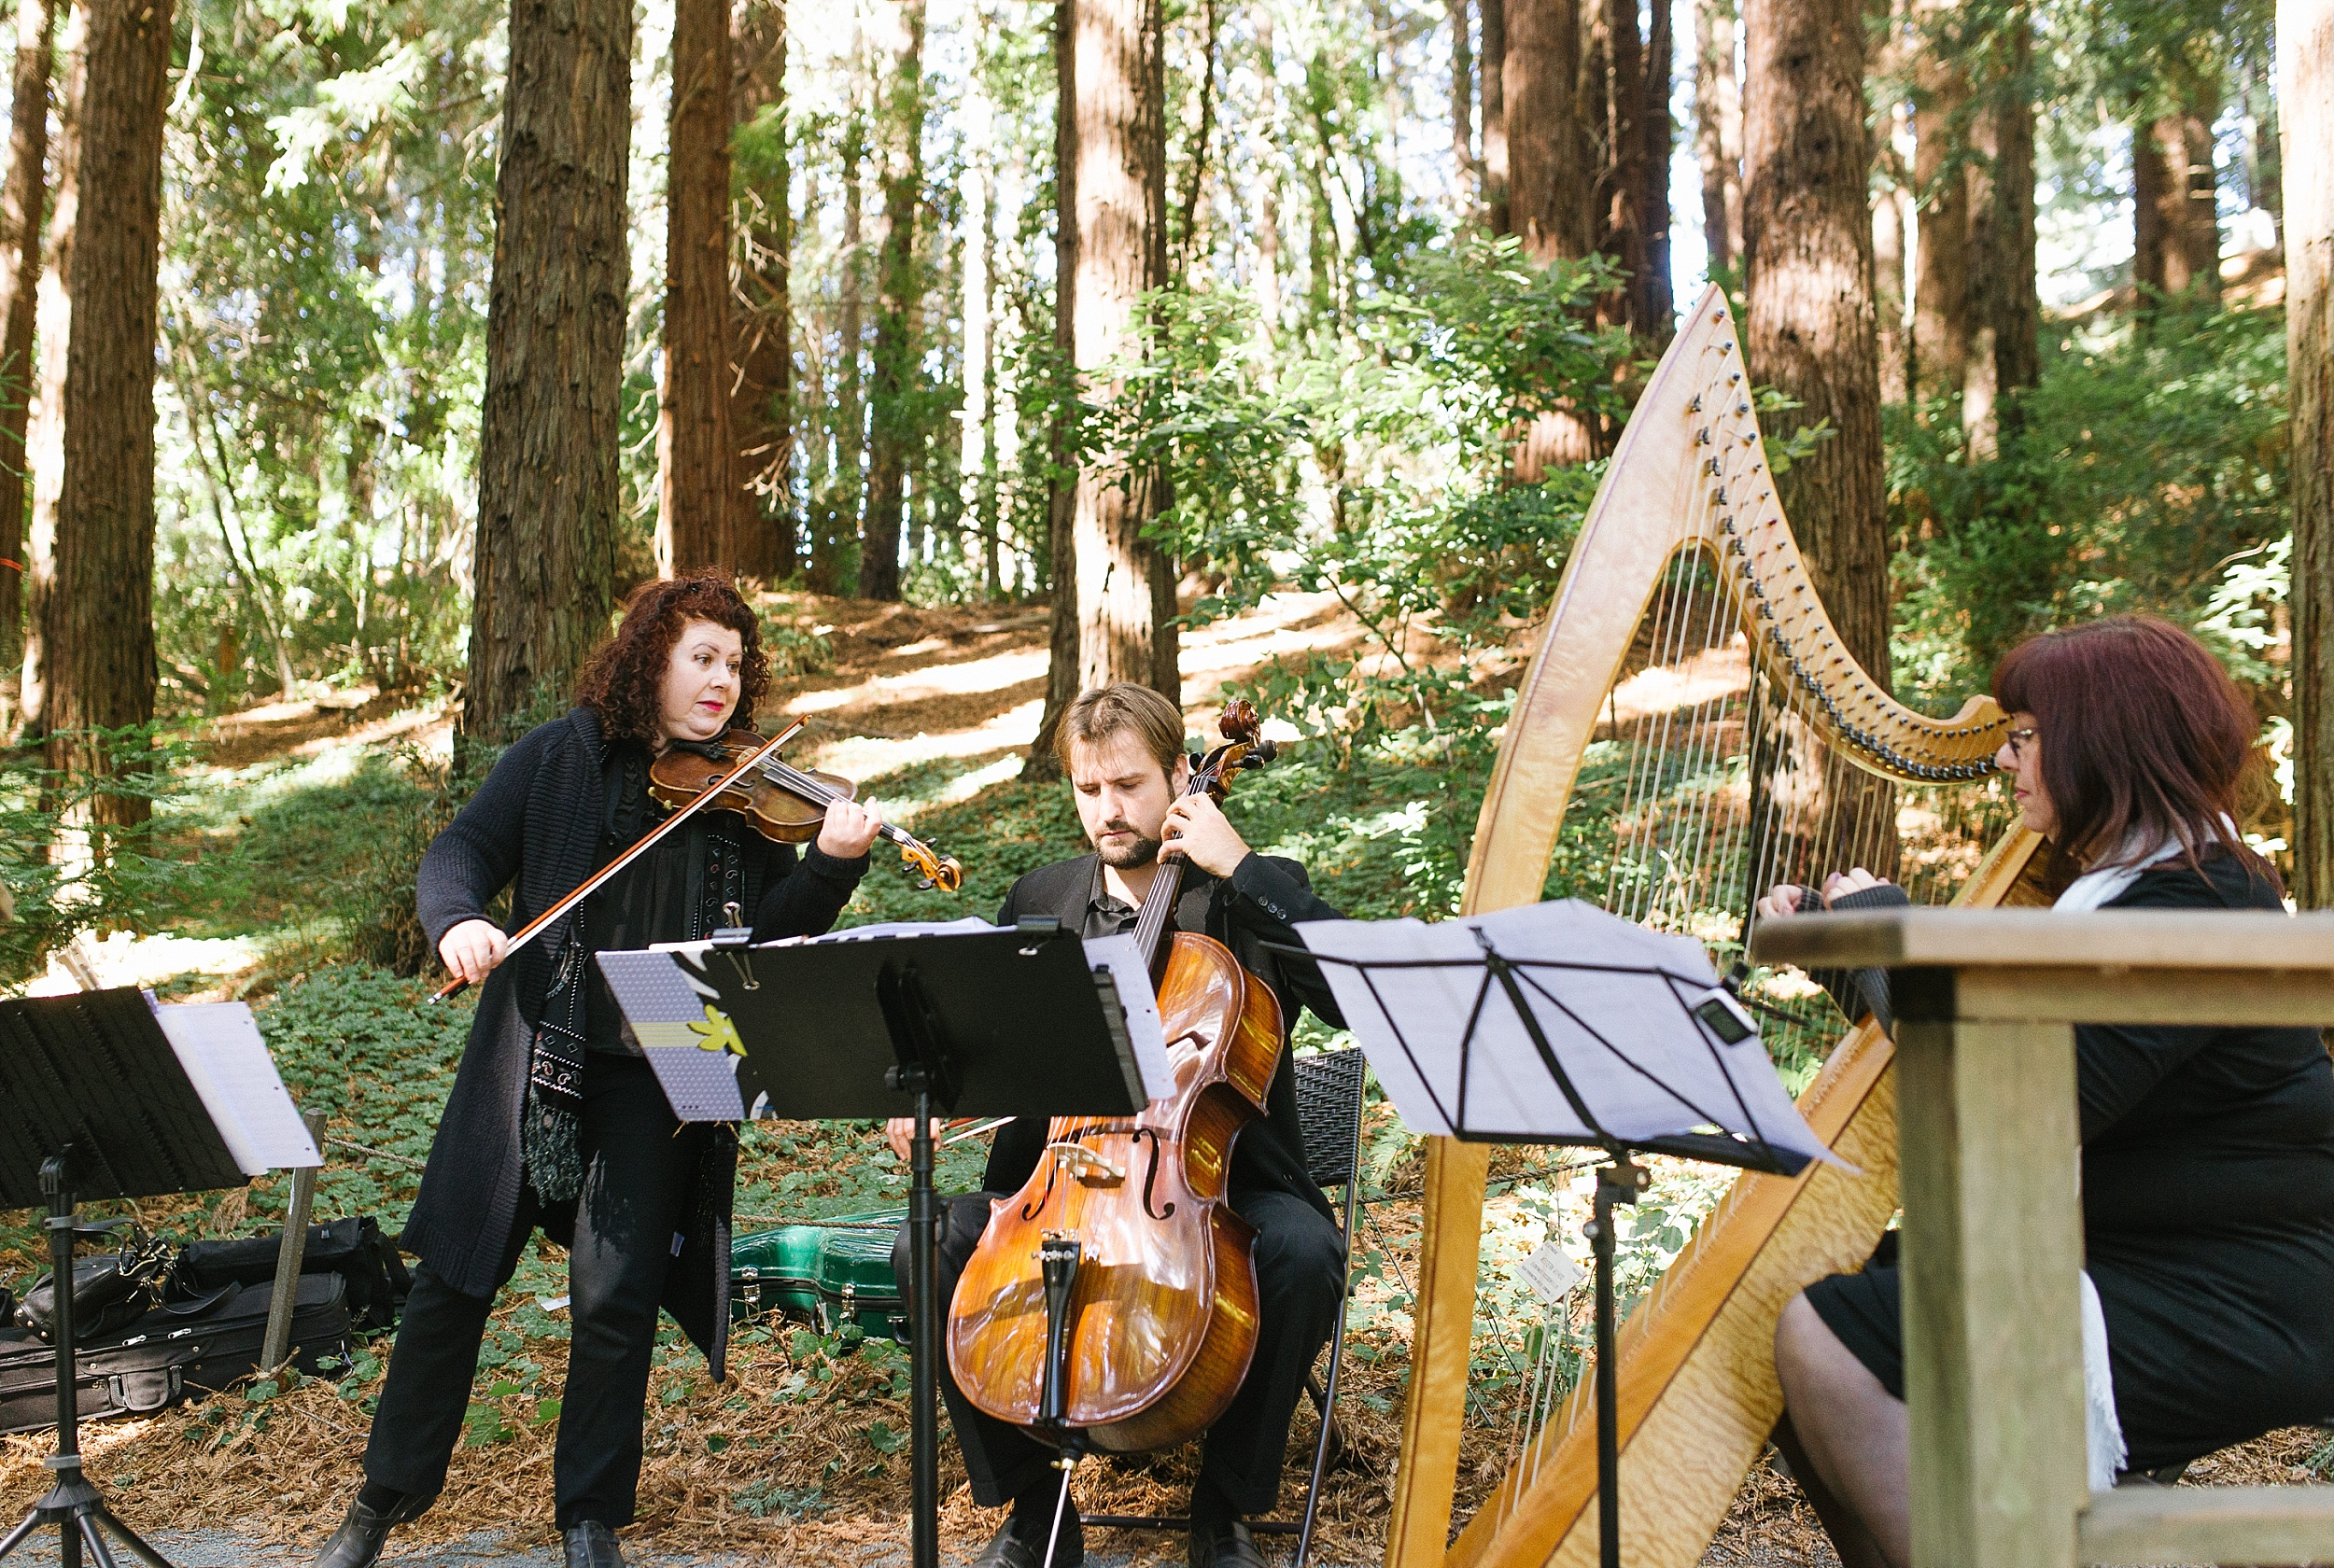 ucberkeley_botanical_redwoods_outdoor_wedding_jennyrez_cdp_0013.jpg